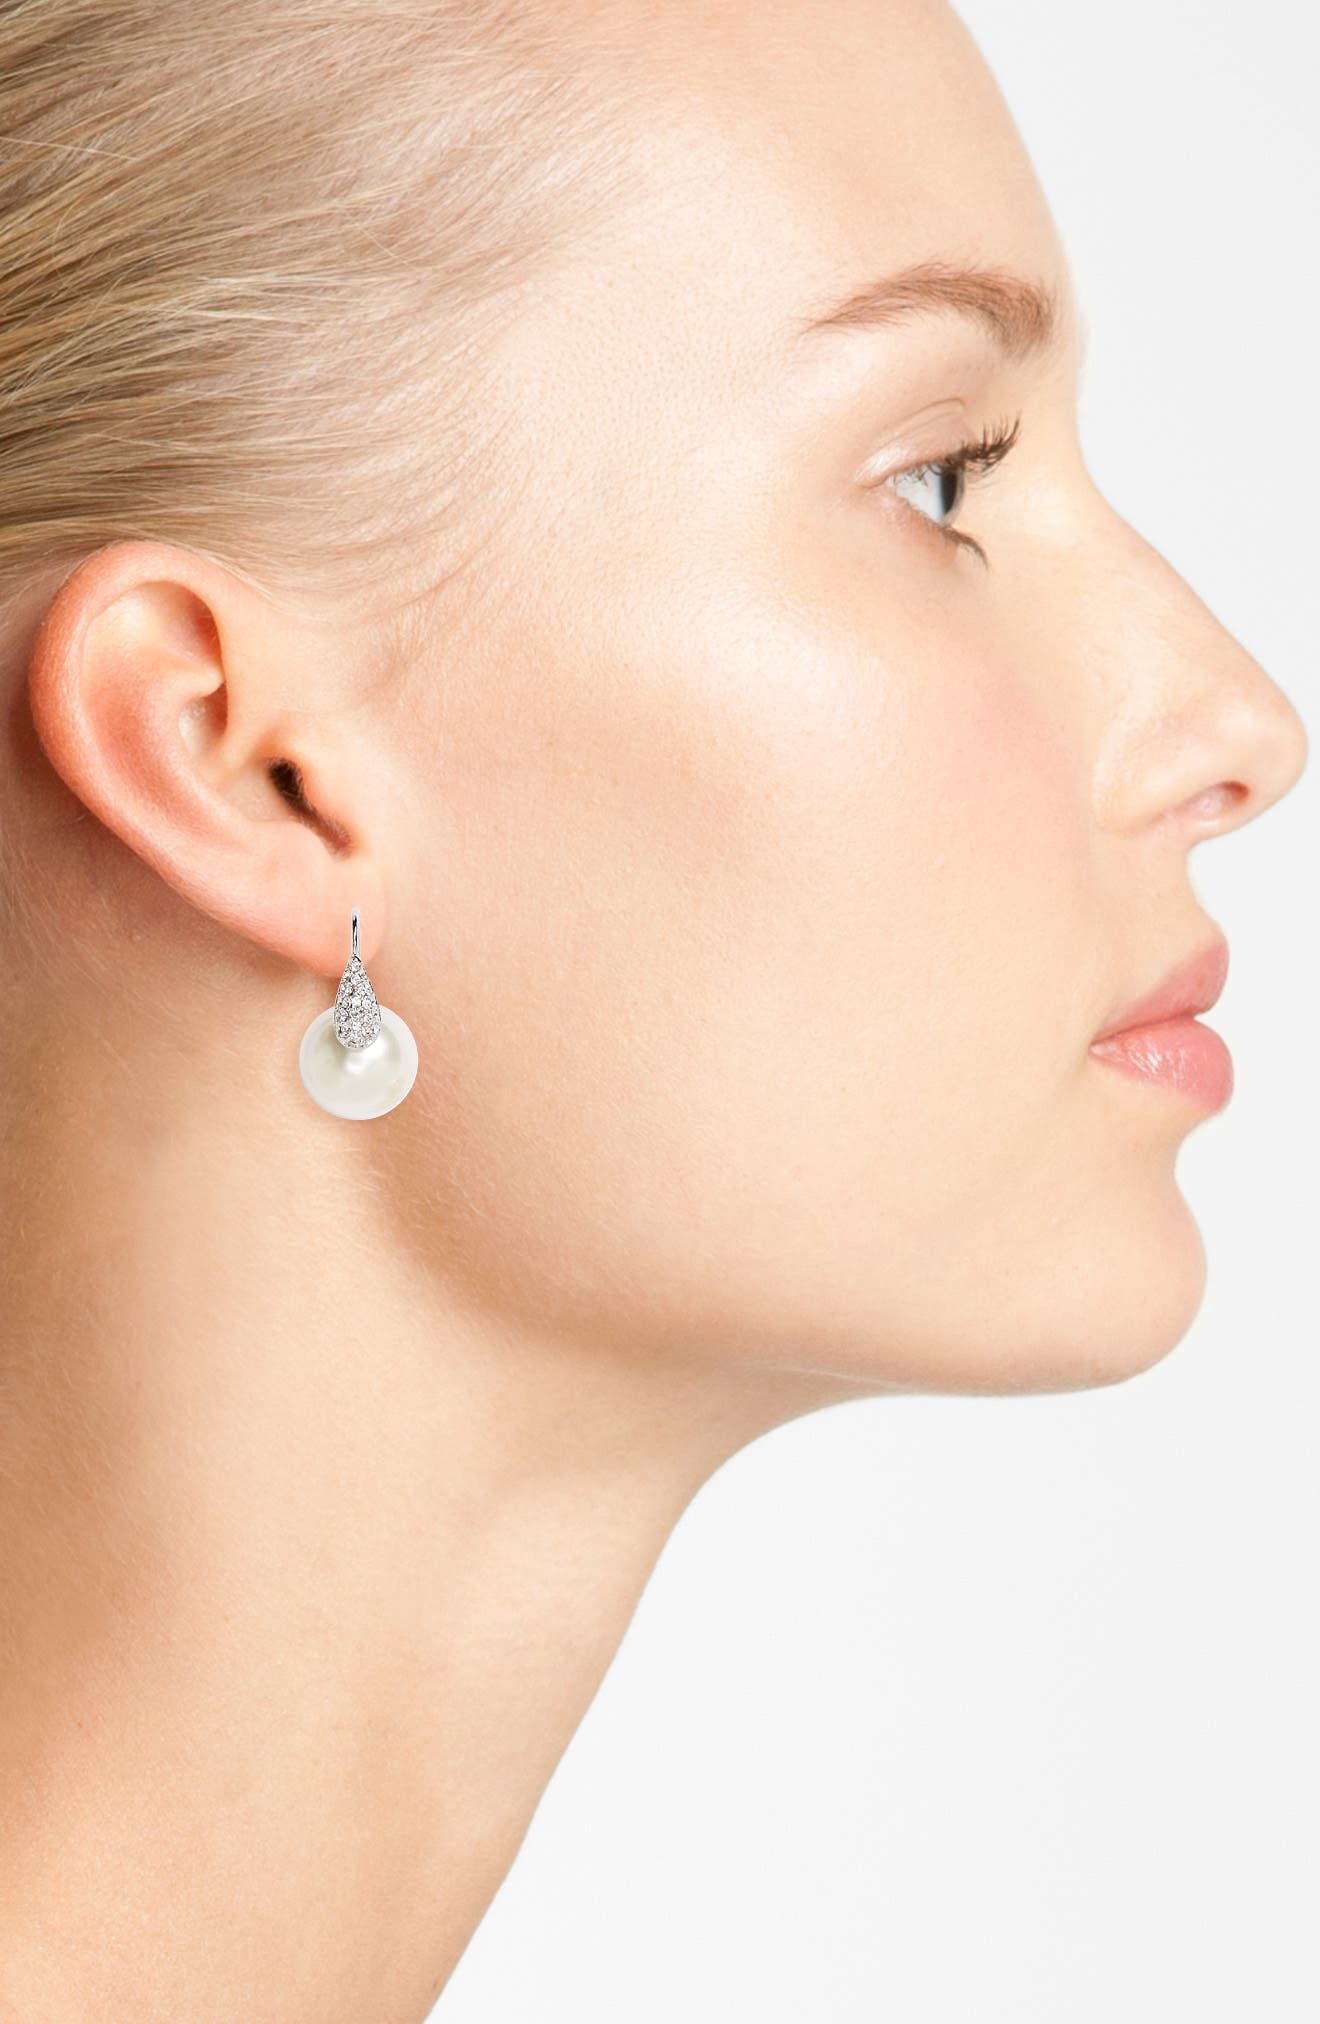 Imitation Pearl & Swarovski Crystal Threader Earrings,                             Alternate thumbnail 2, color,                             Ivory Pearl / Silver